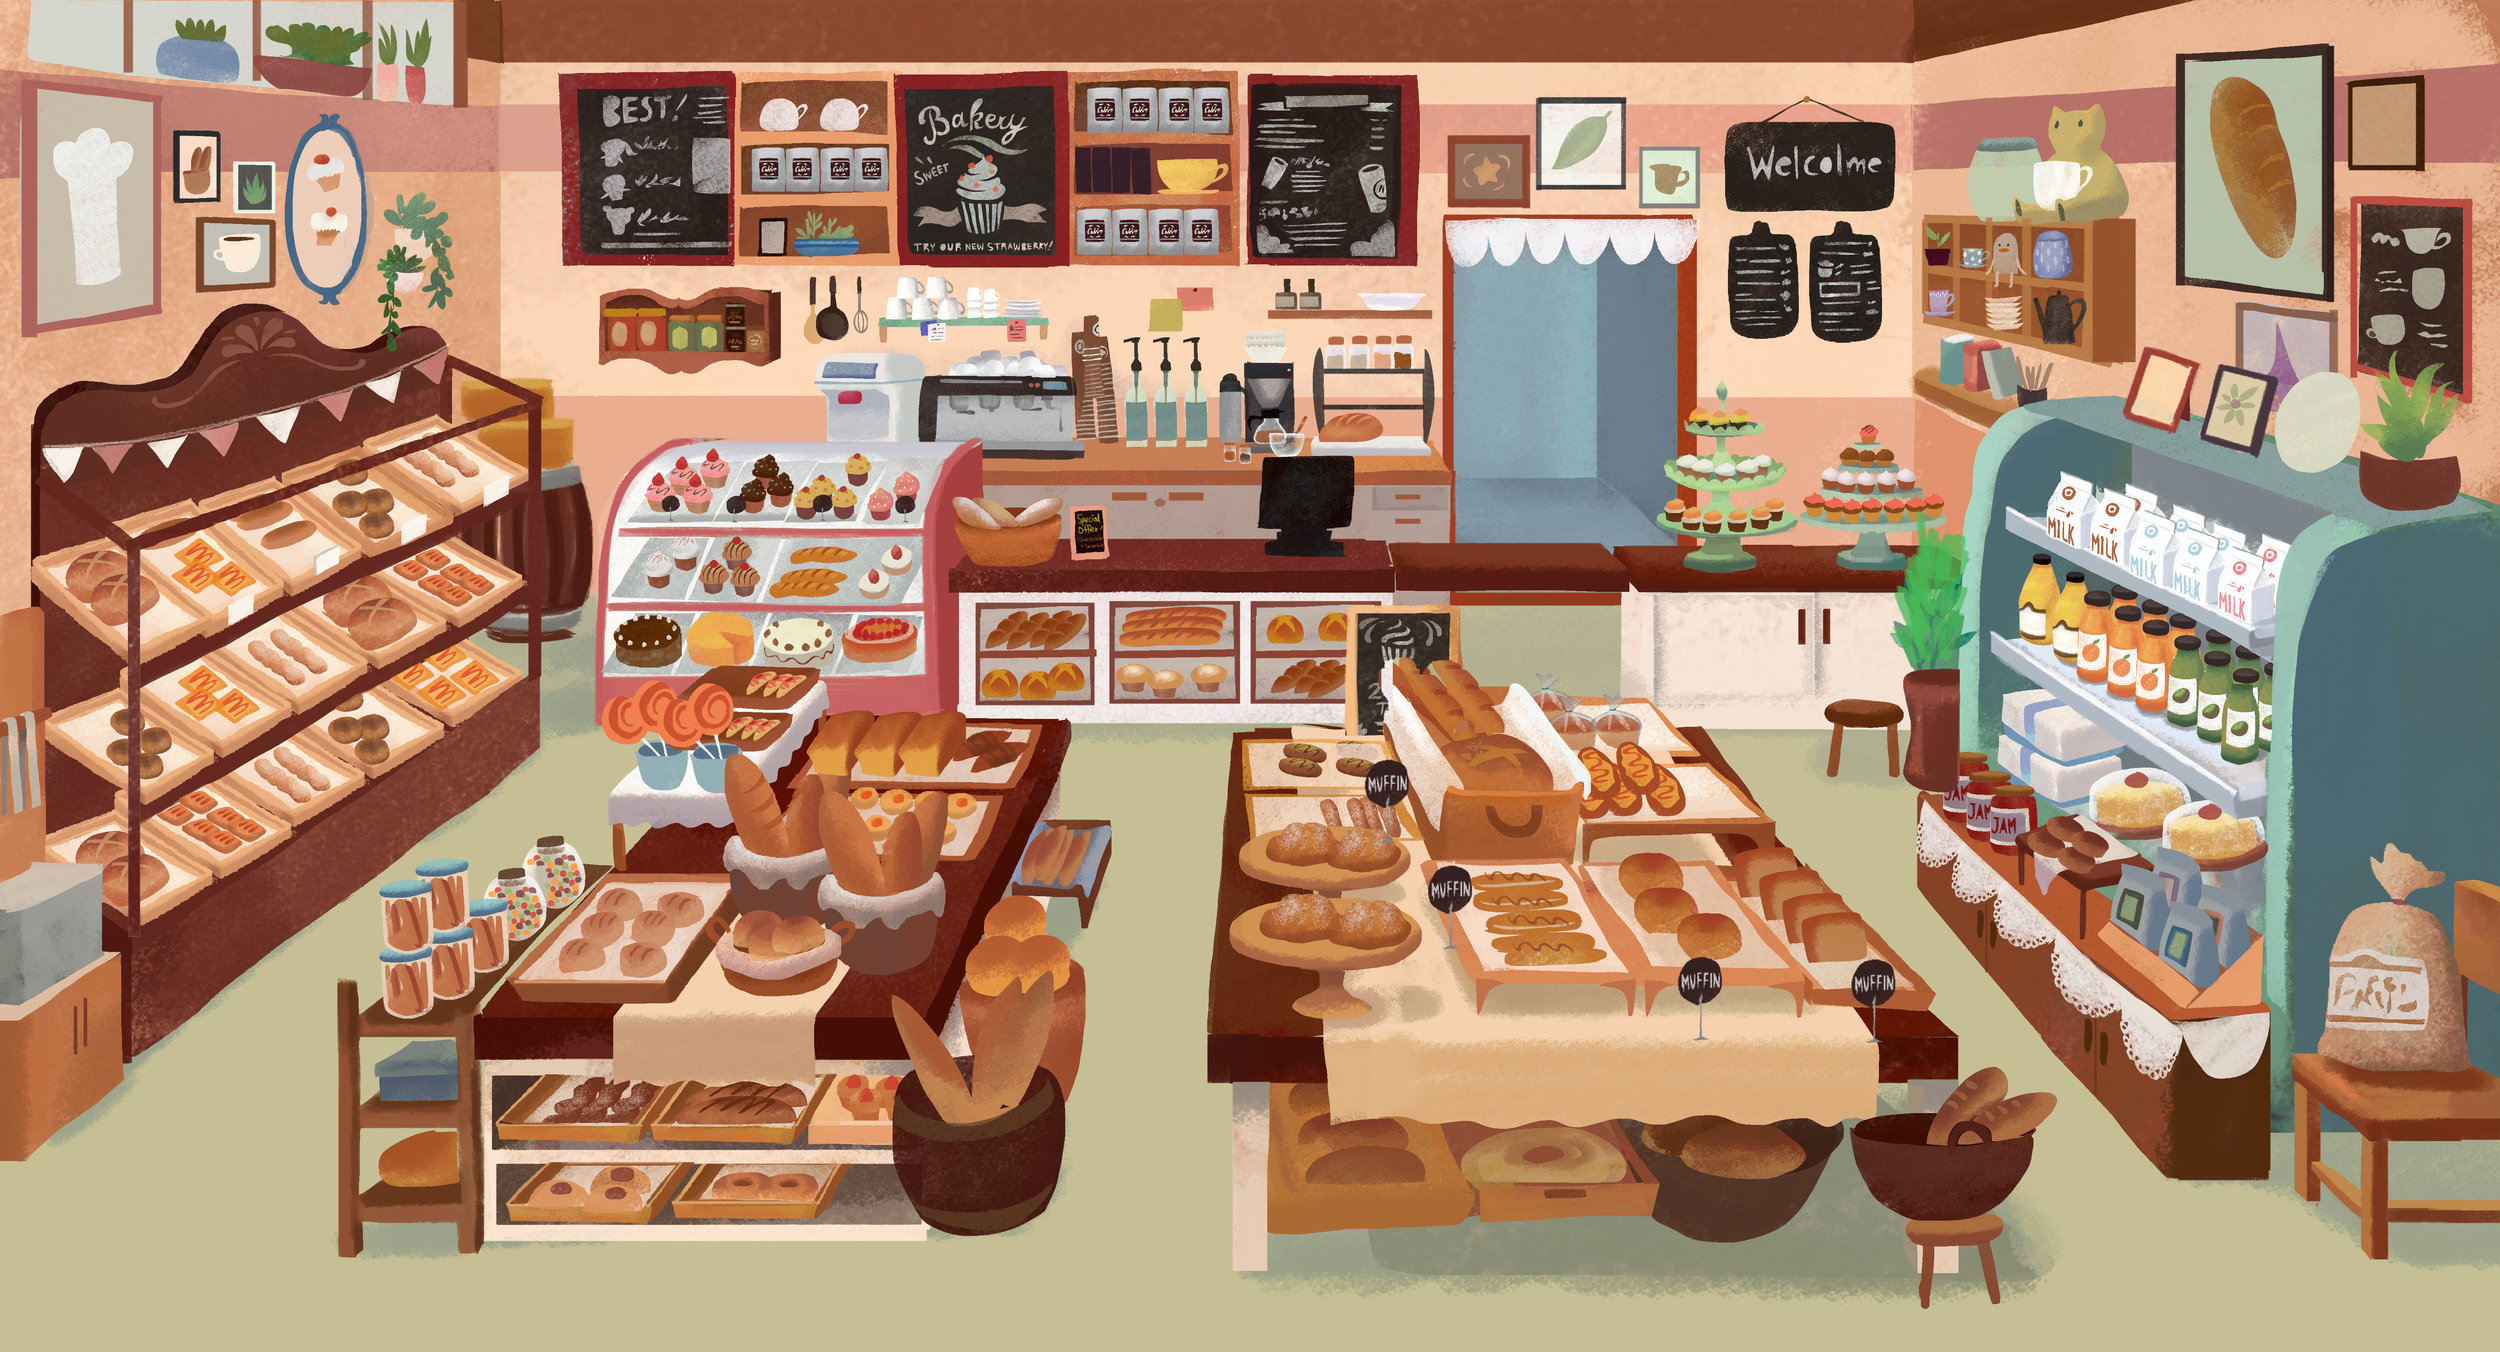 Bakery shop_full view